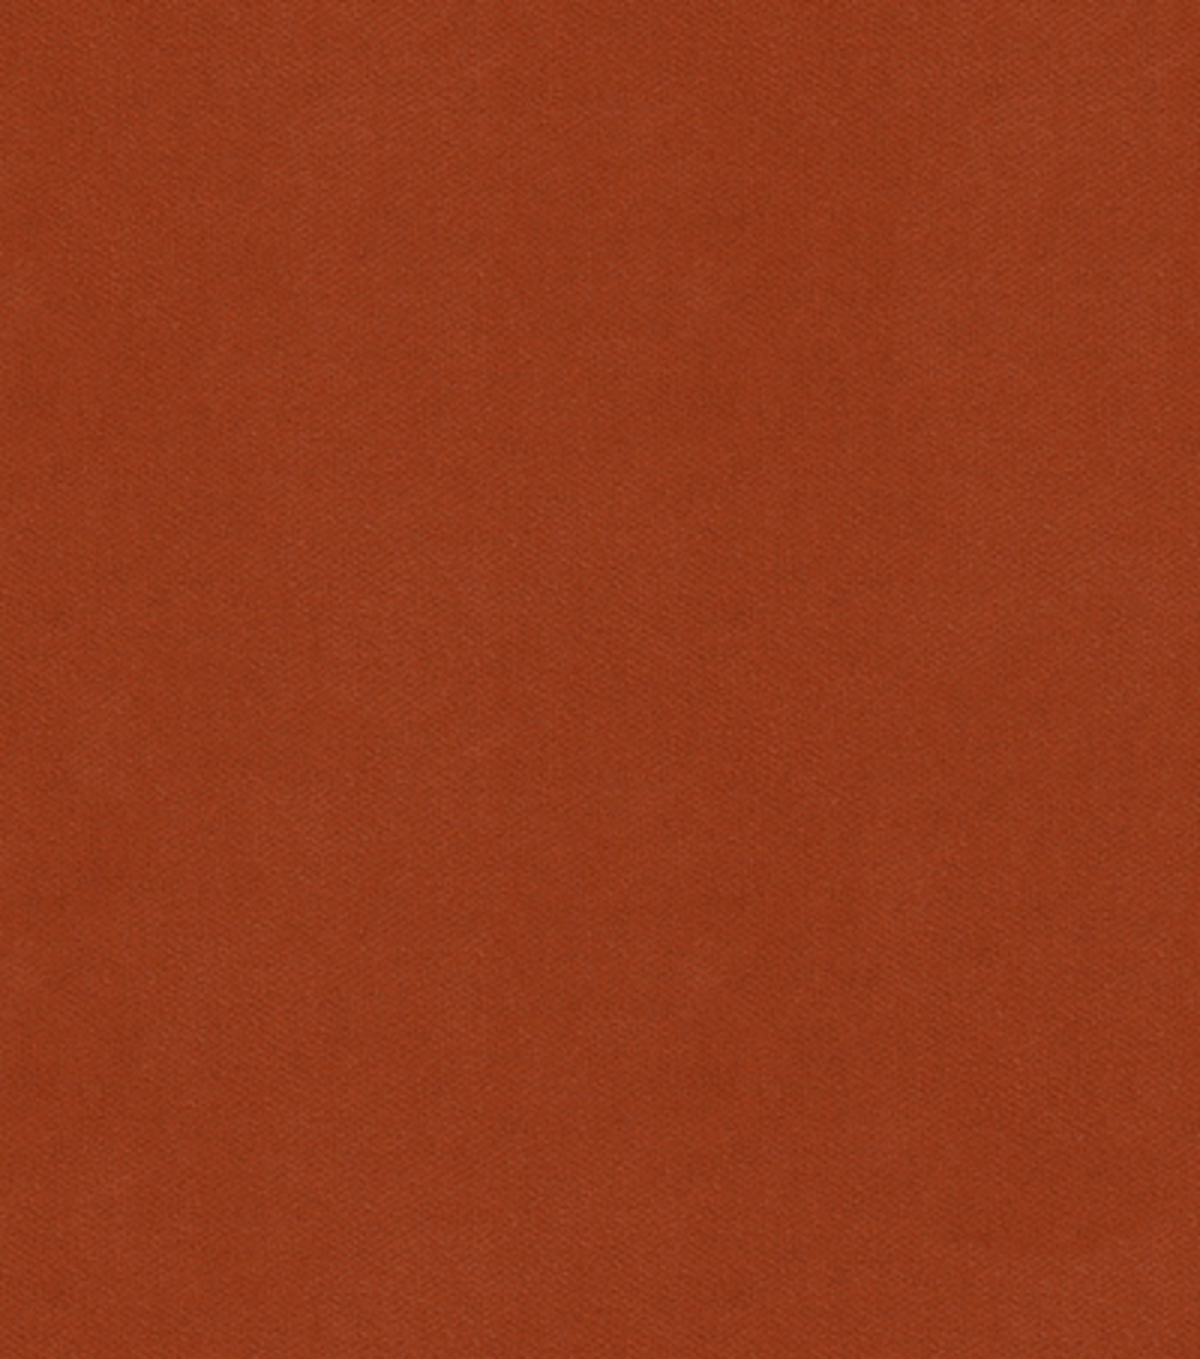 Home Decor 8\u0022x8\u0022 Fabric Swatch-Como-289-Rust